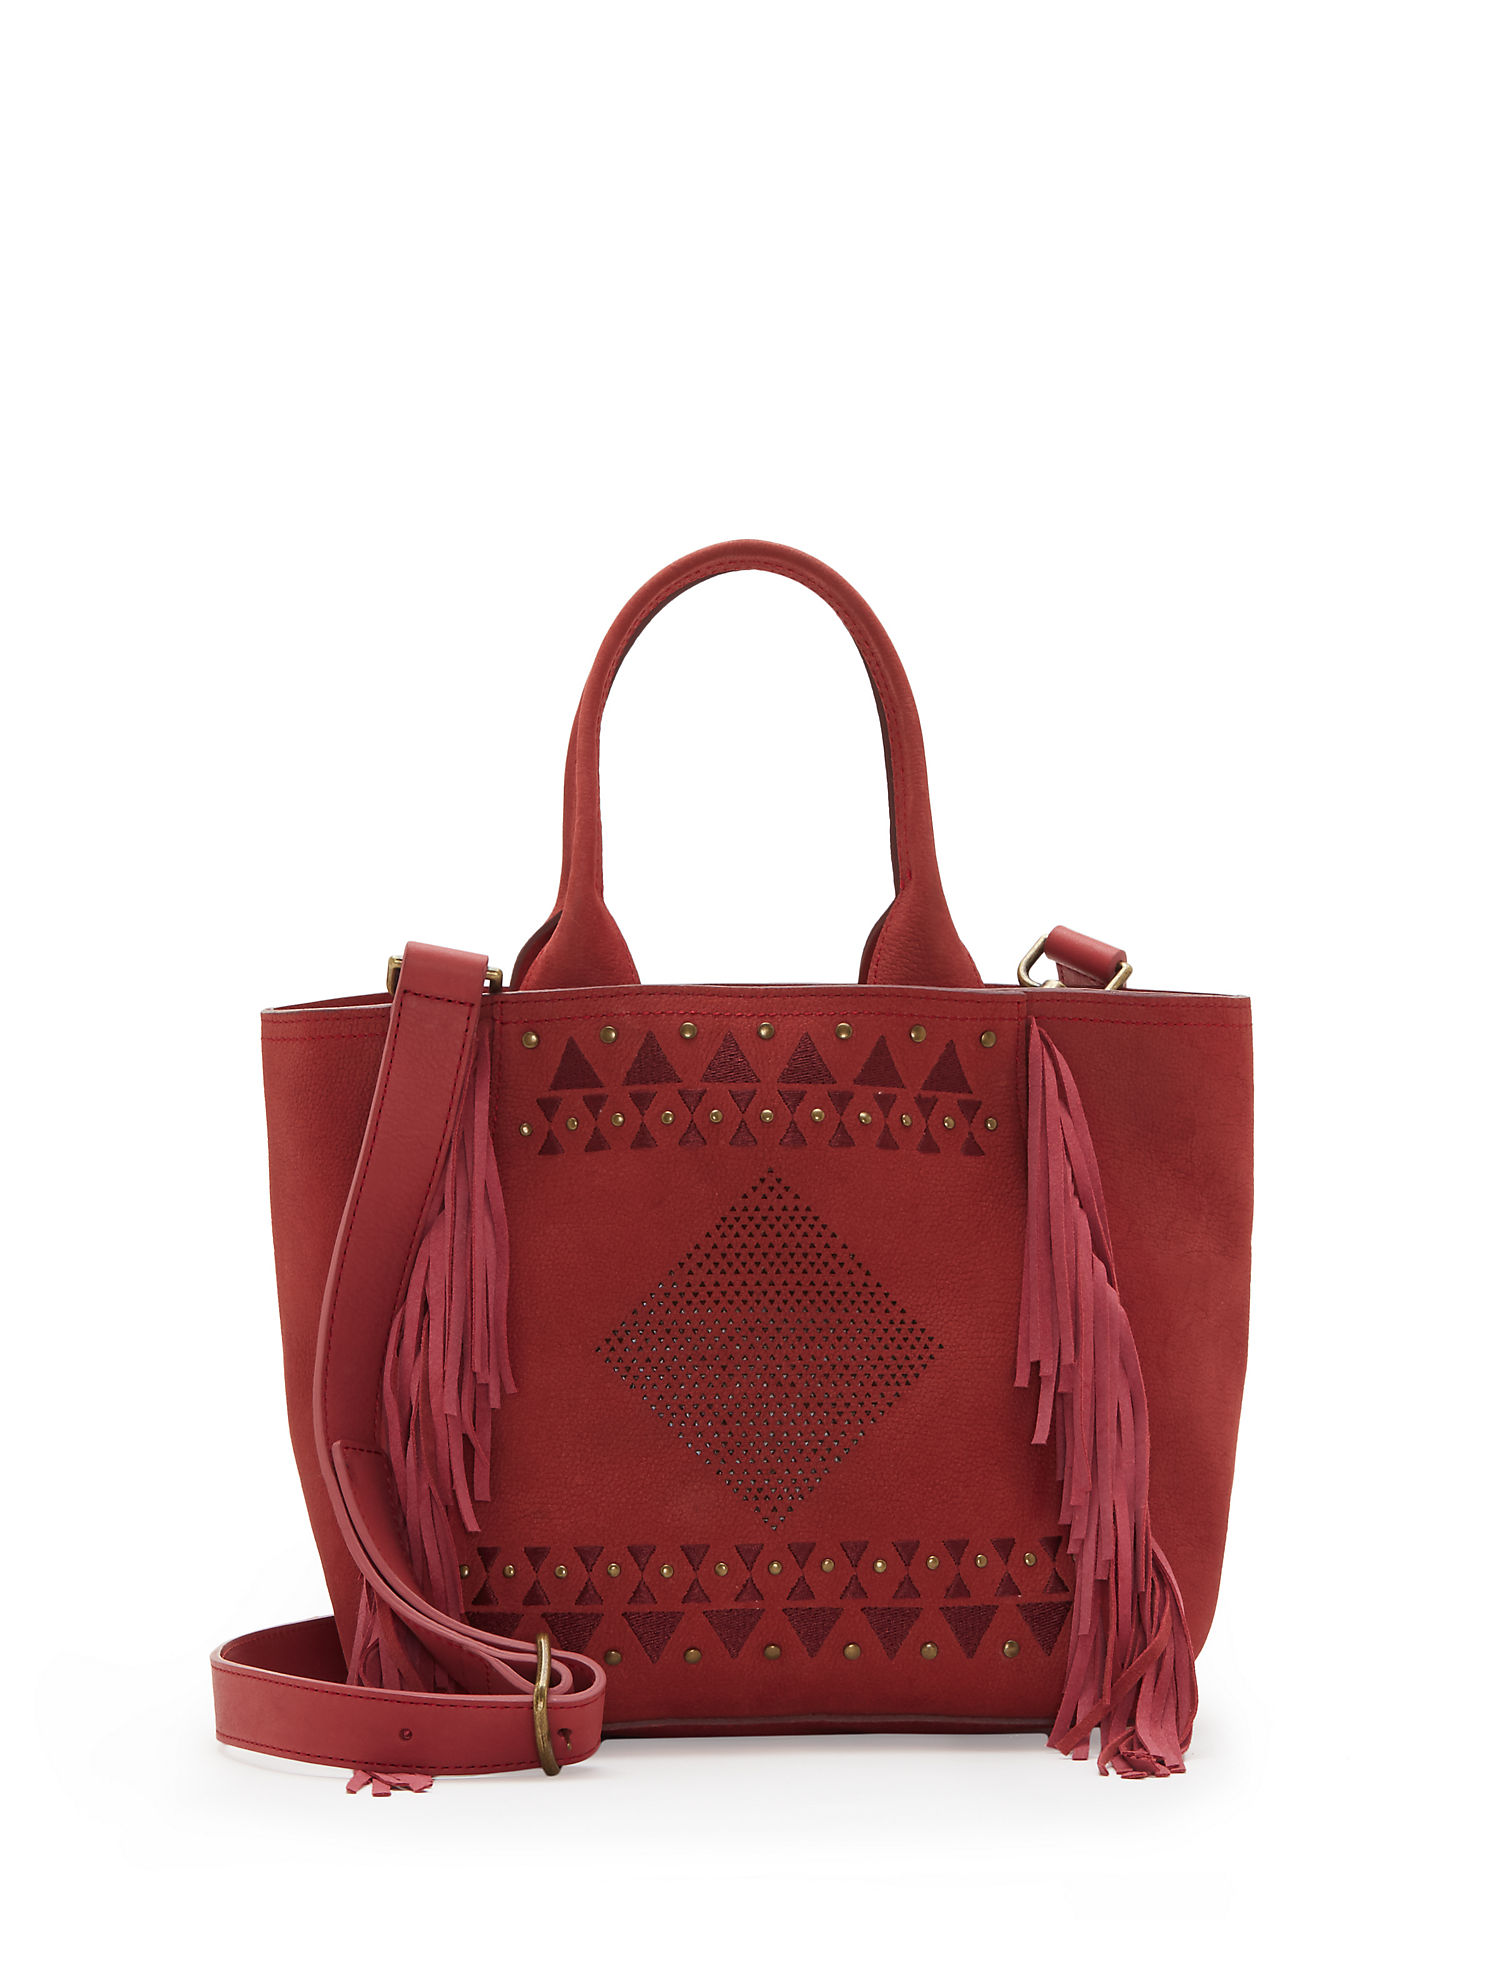 Red Handbags on Sale | Lucky Brand